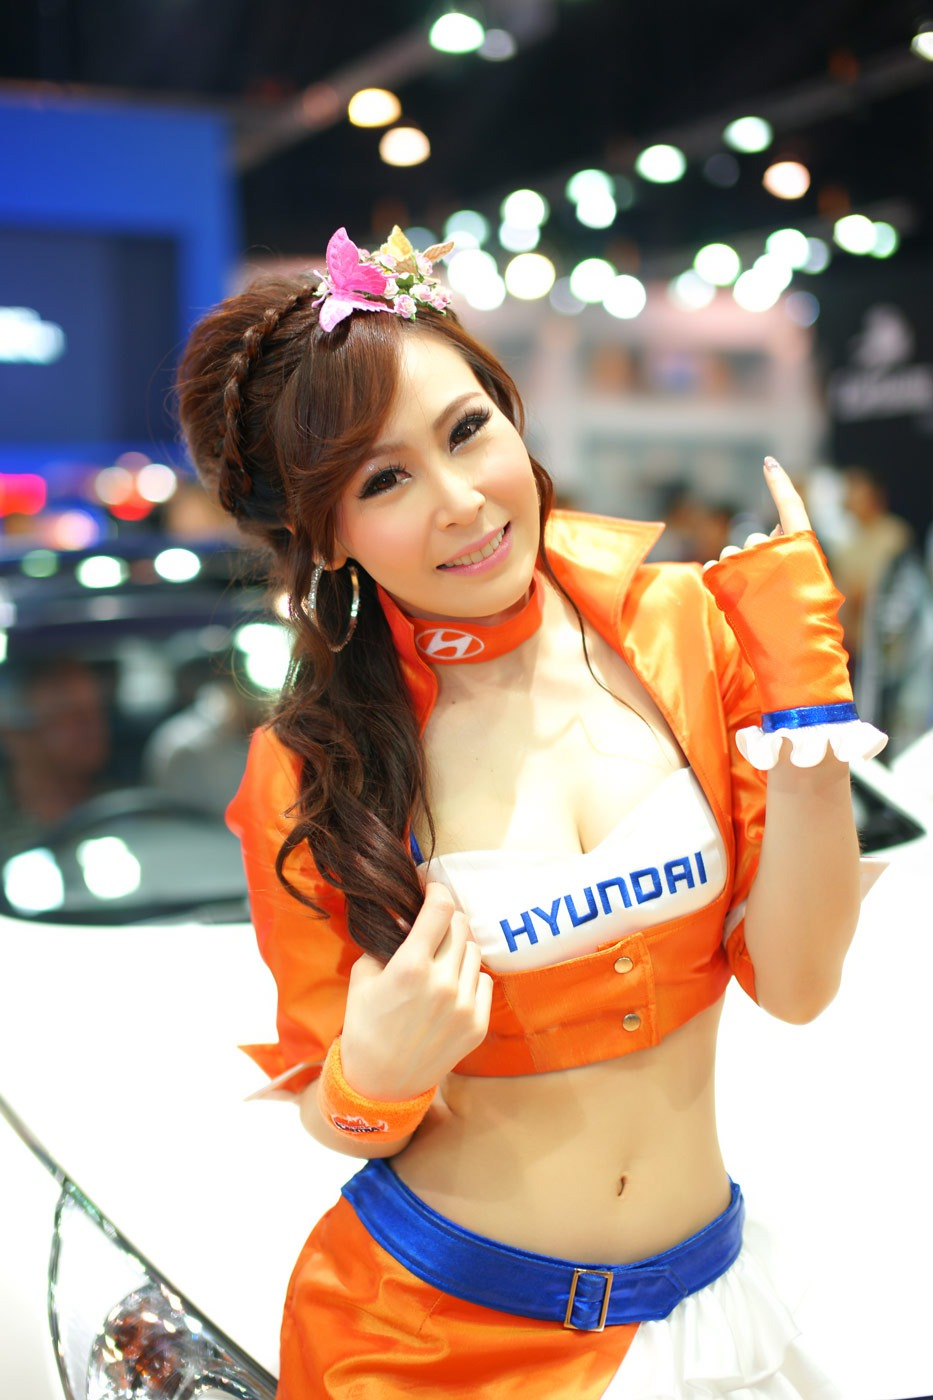 Pretty Thai lady of Pioneer Company, so Sexy